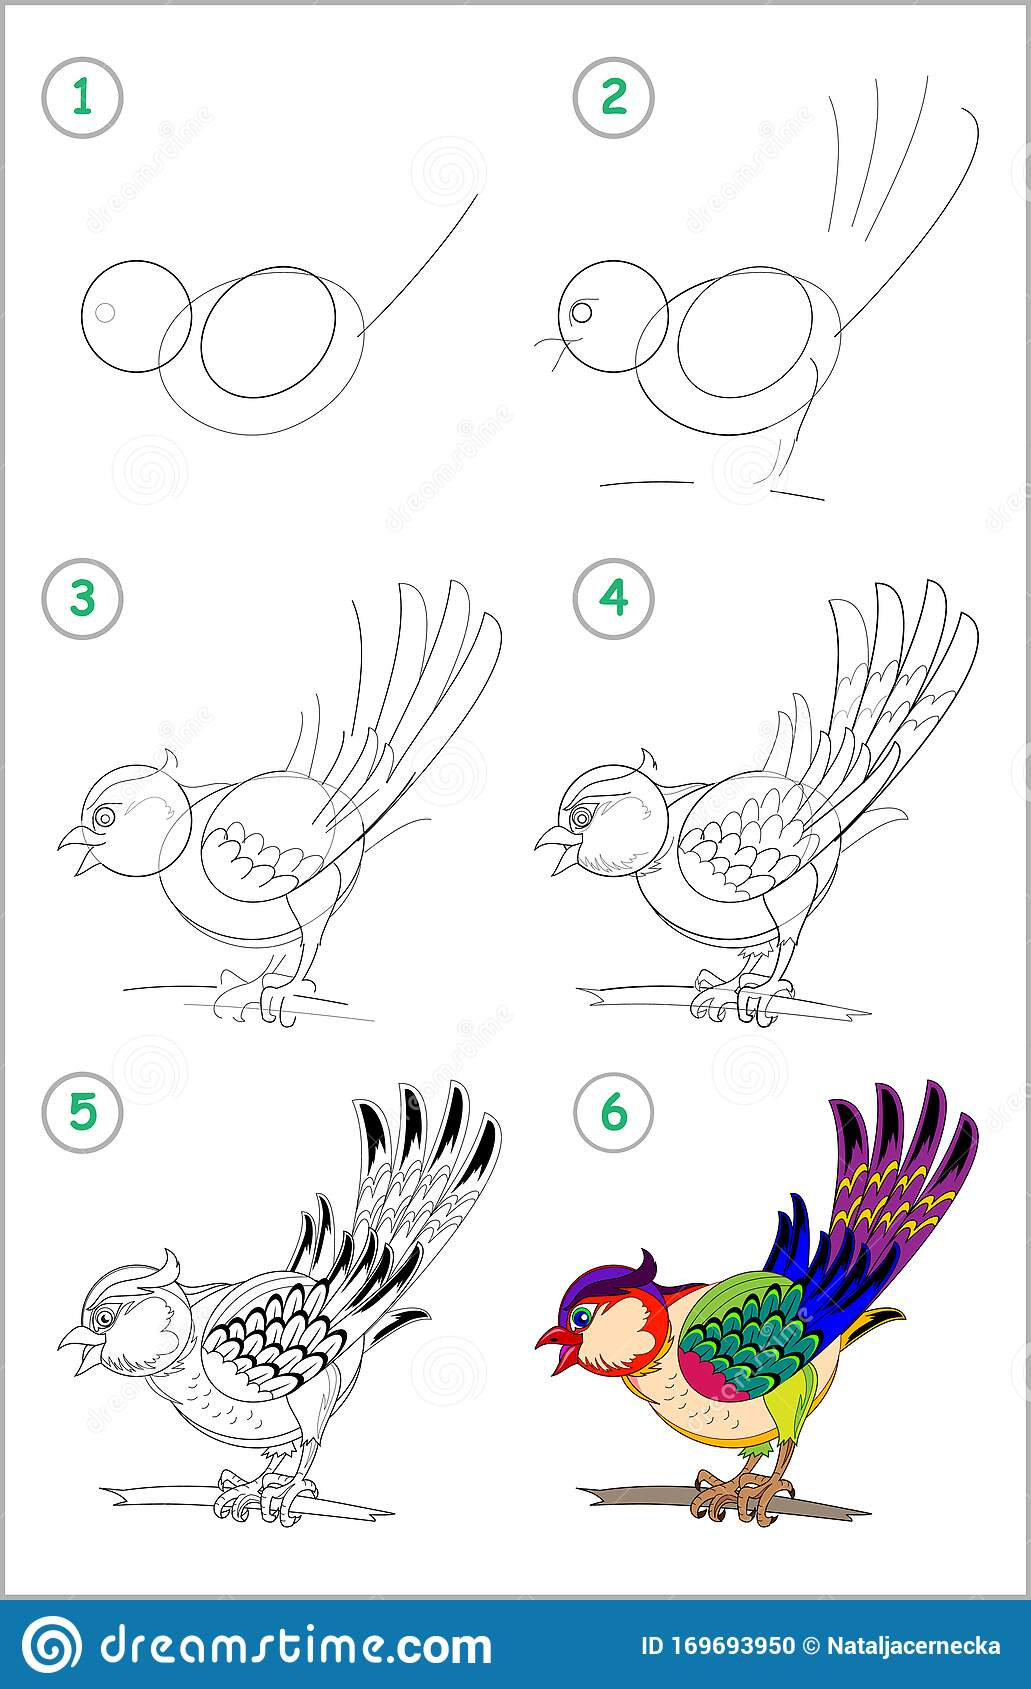 How To Draw Step By Step A Cute Little Toy Tiger